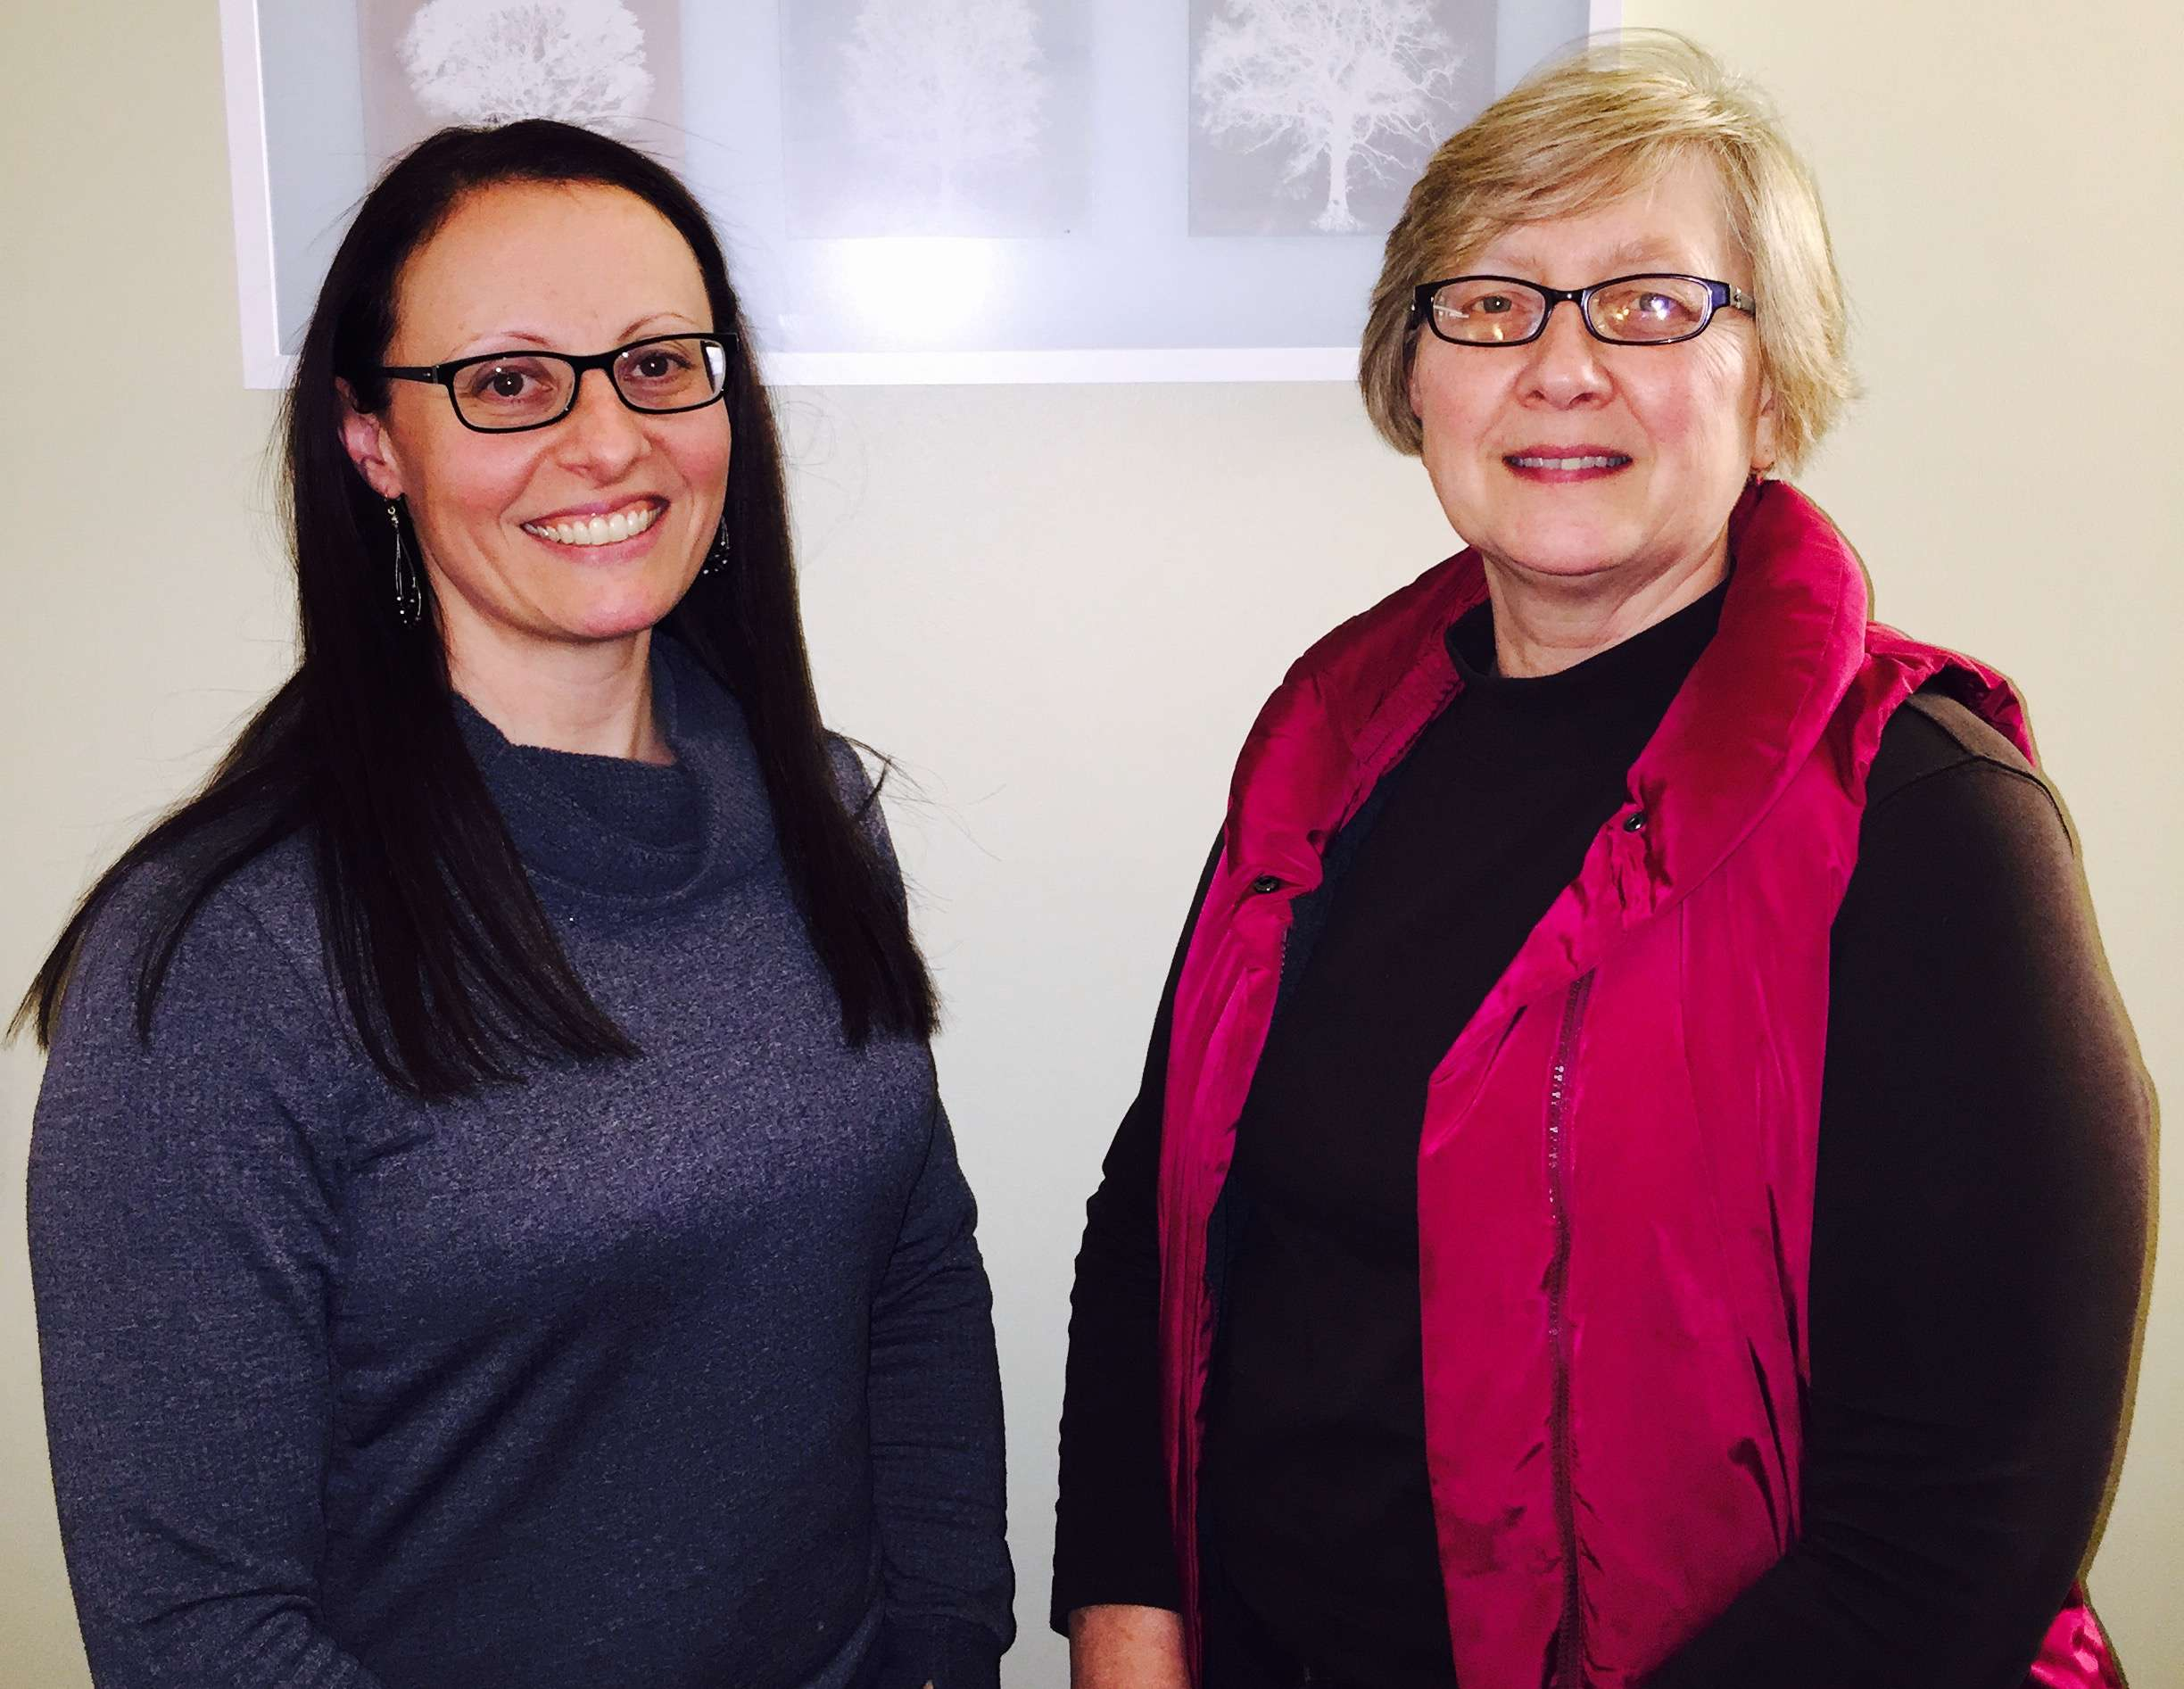 oanne Esparmer, Public Health Supervisor for Family & Community and Patti Martin, Public Health Supervisor for Long Term Care of Carlton County Health & Human Services